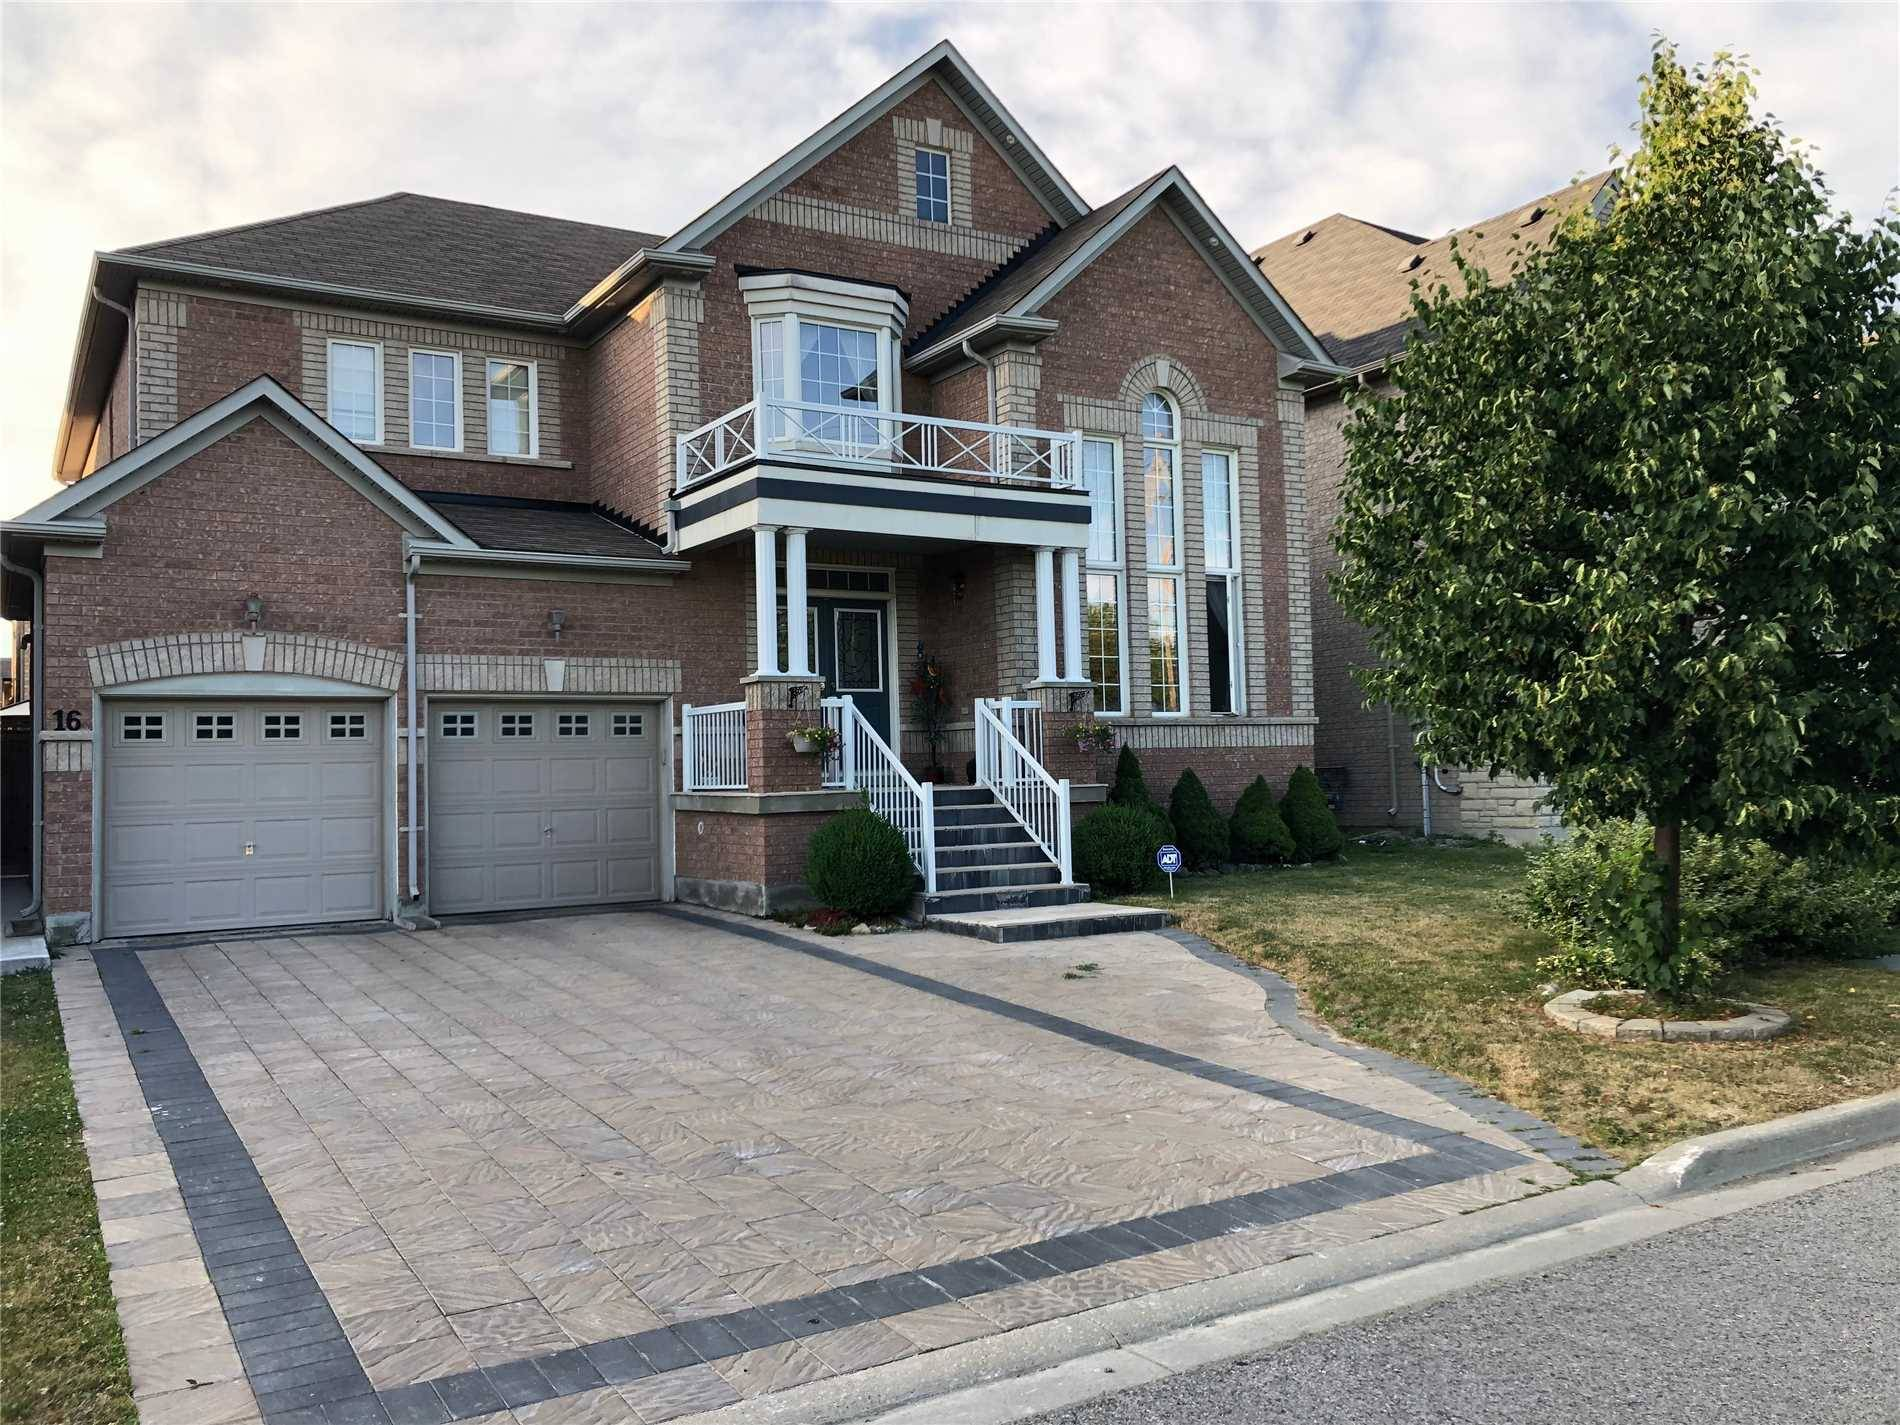 House for sale at 16 Lugano Cres Markham Ontario - MLS: N4482189